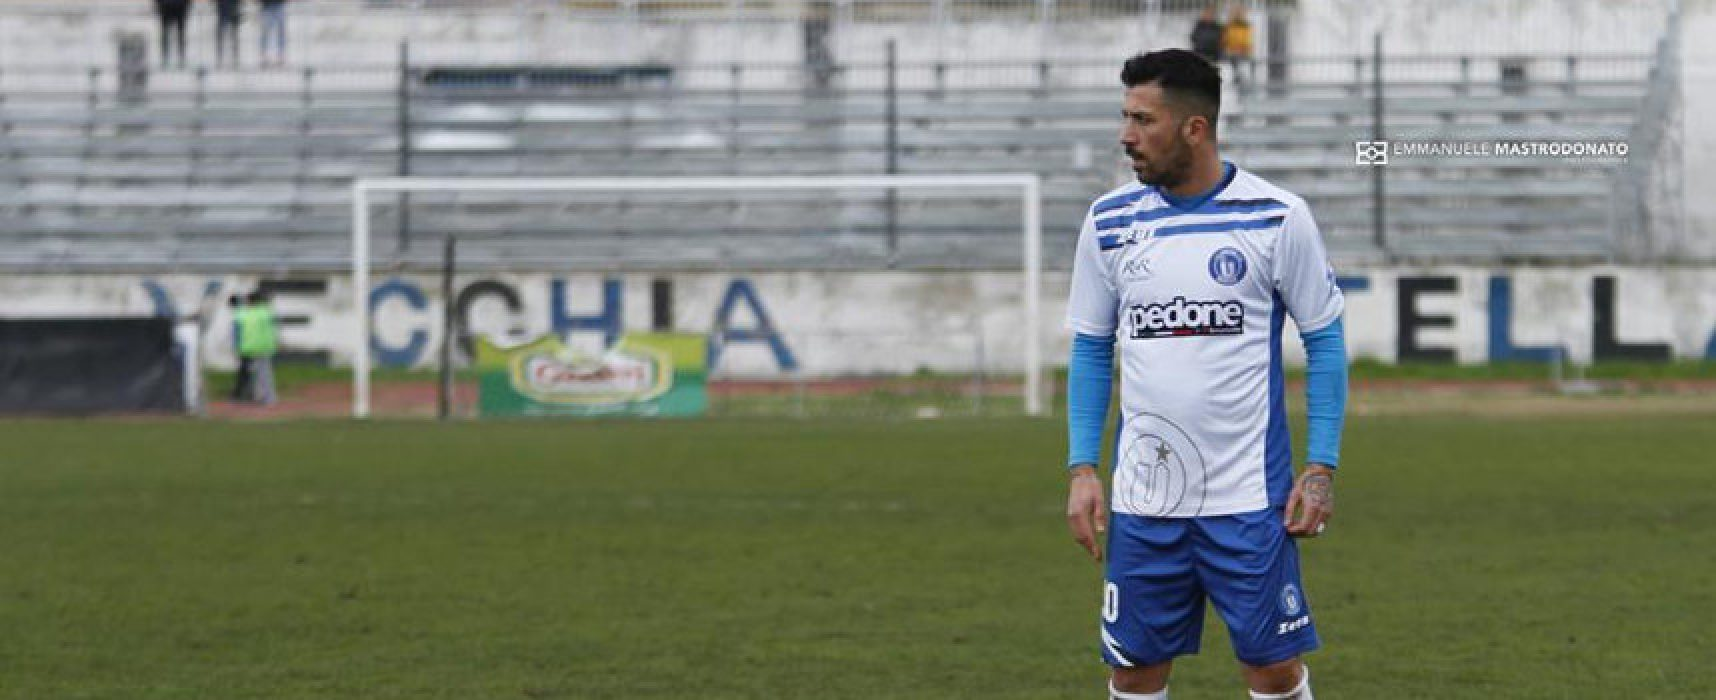 Unione Calcio – Avetrana 1-2 / VIDEO HIGHLIGHTS